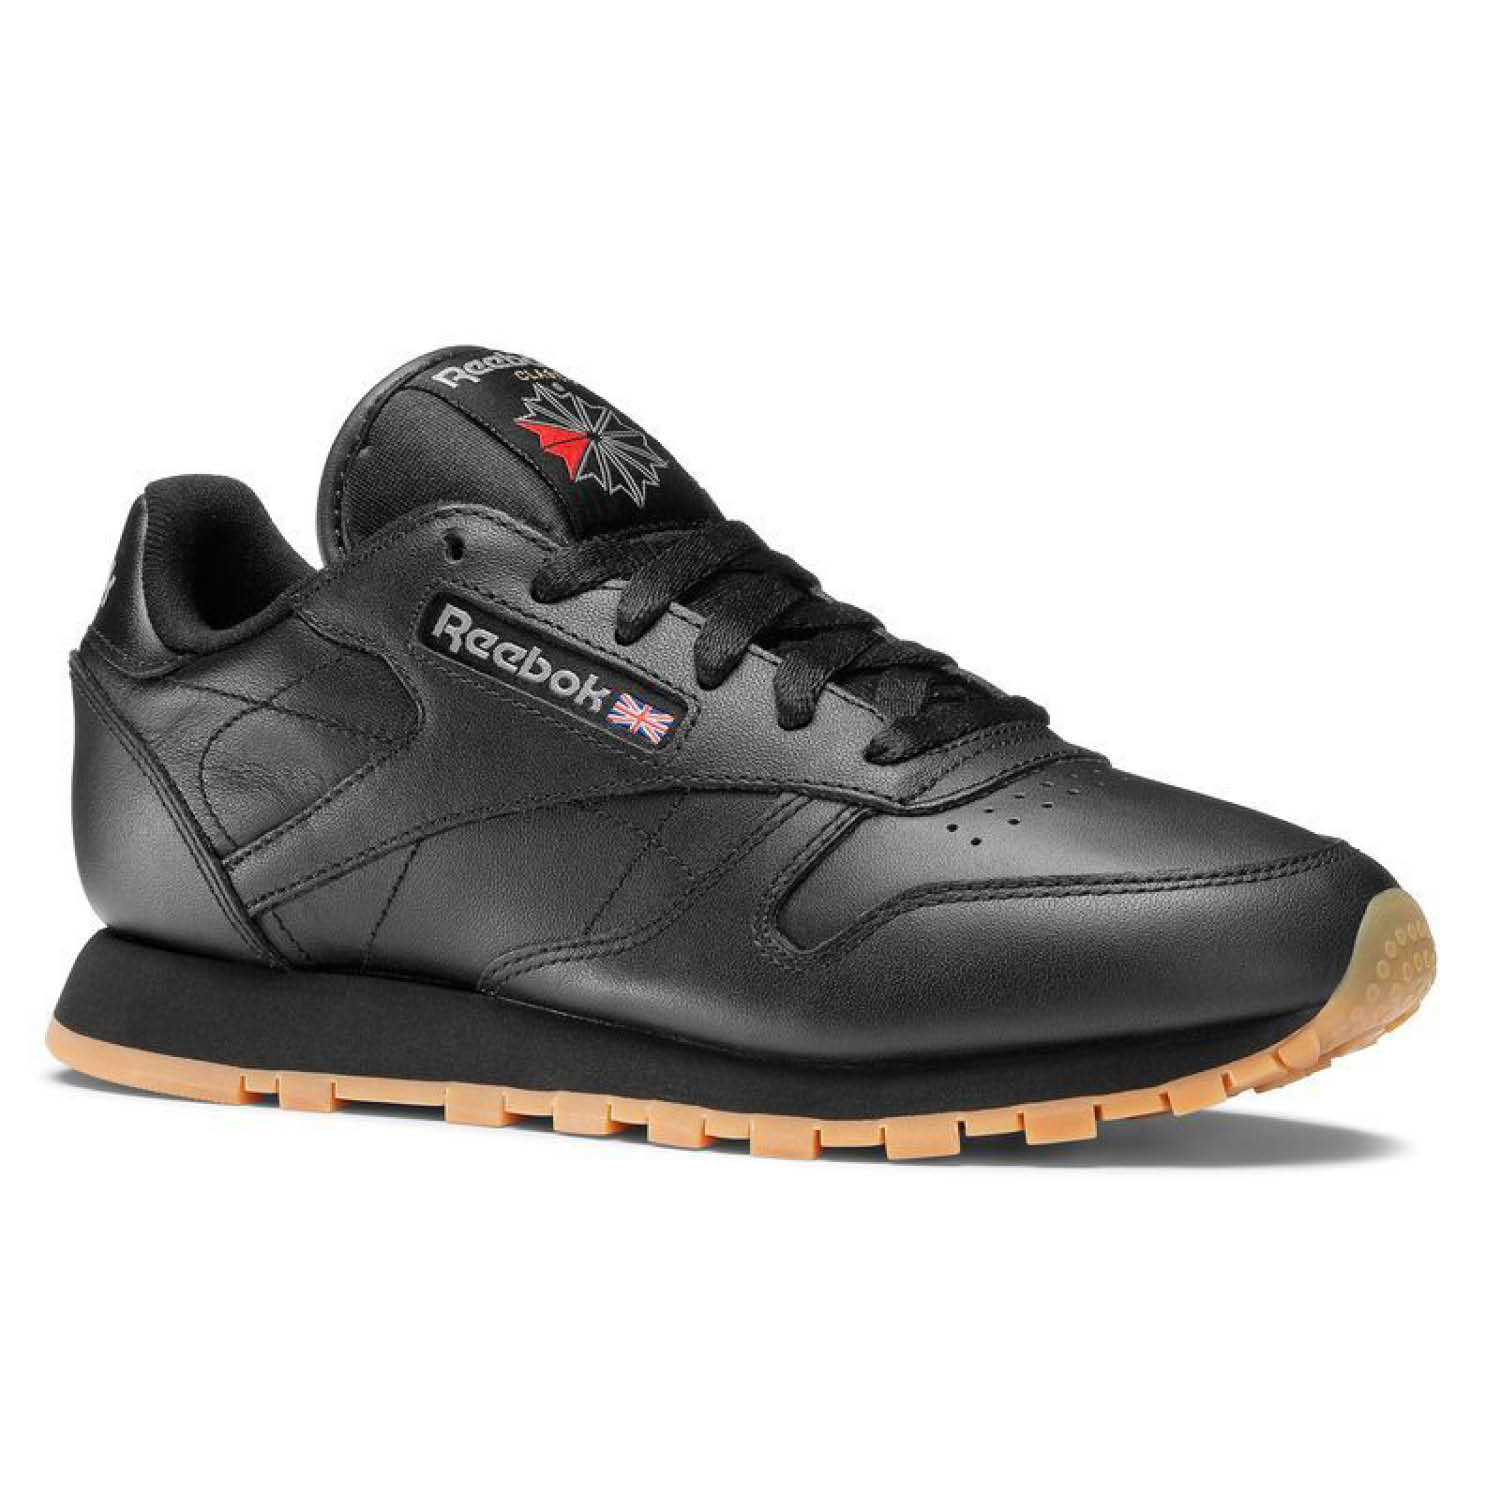 Reebok Classic Leather Black/Gum 49804